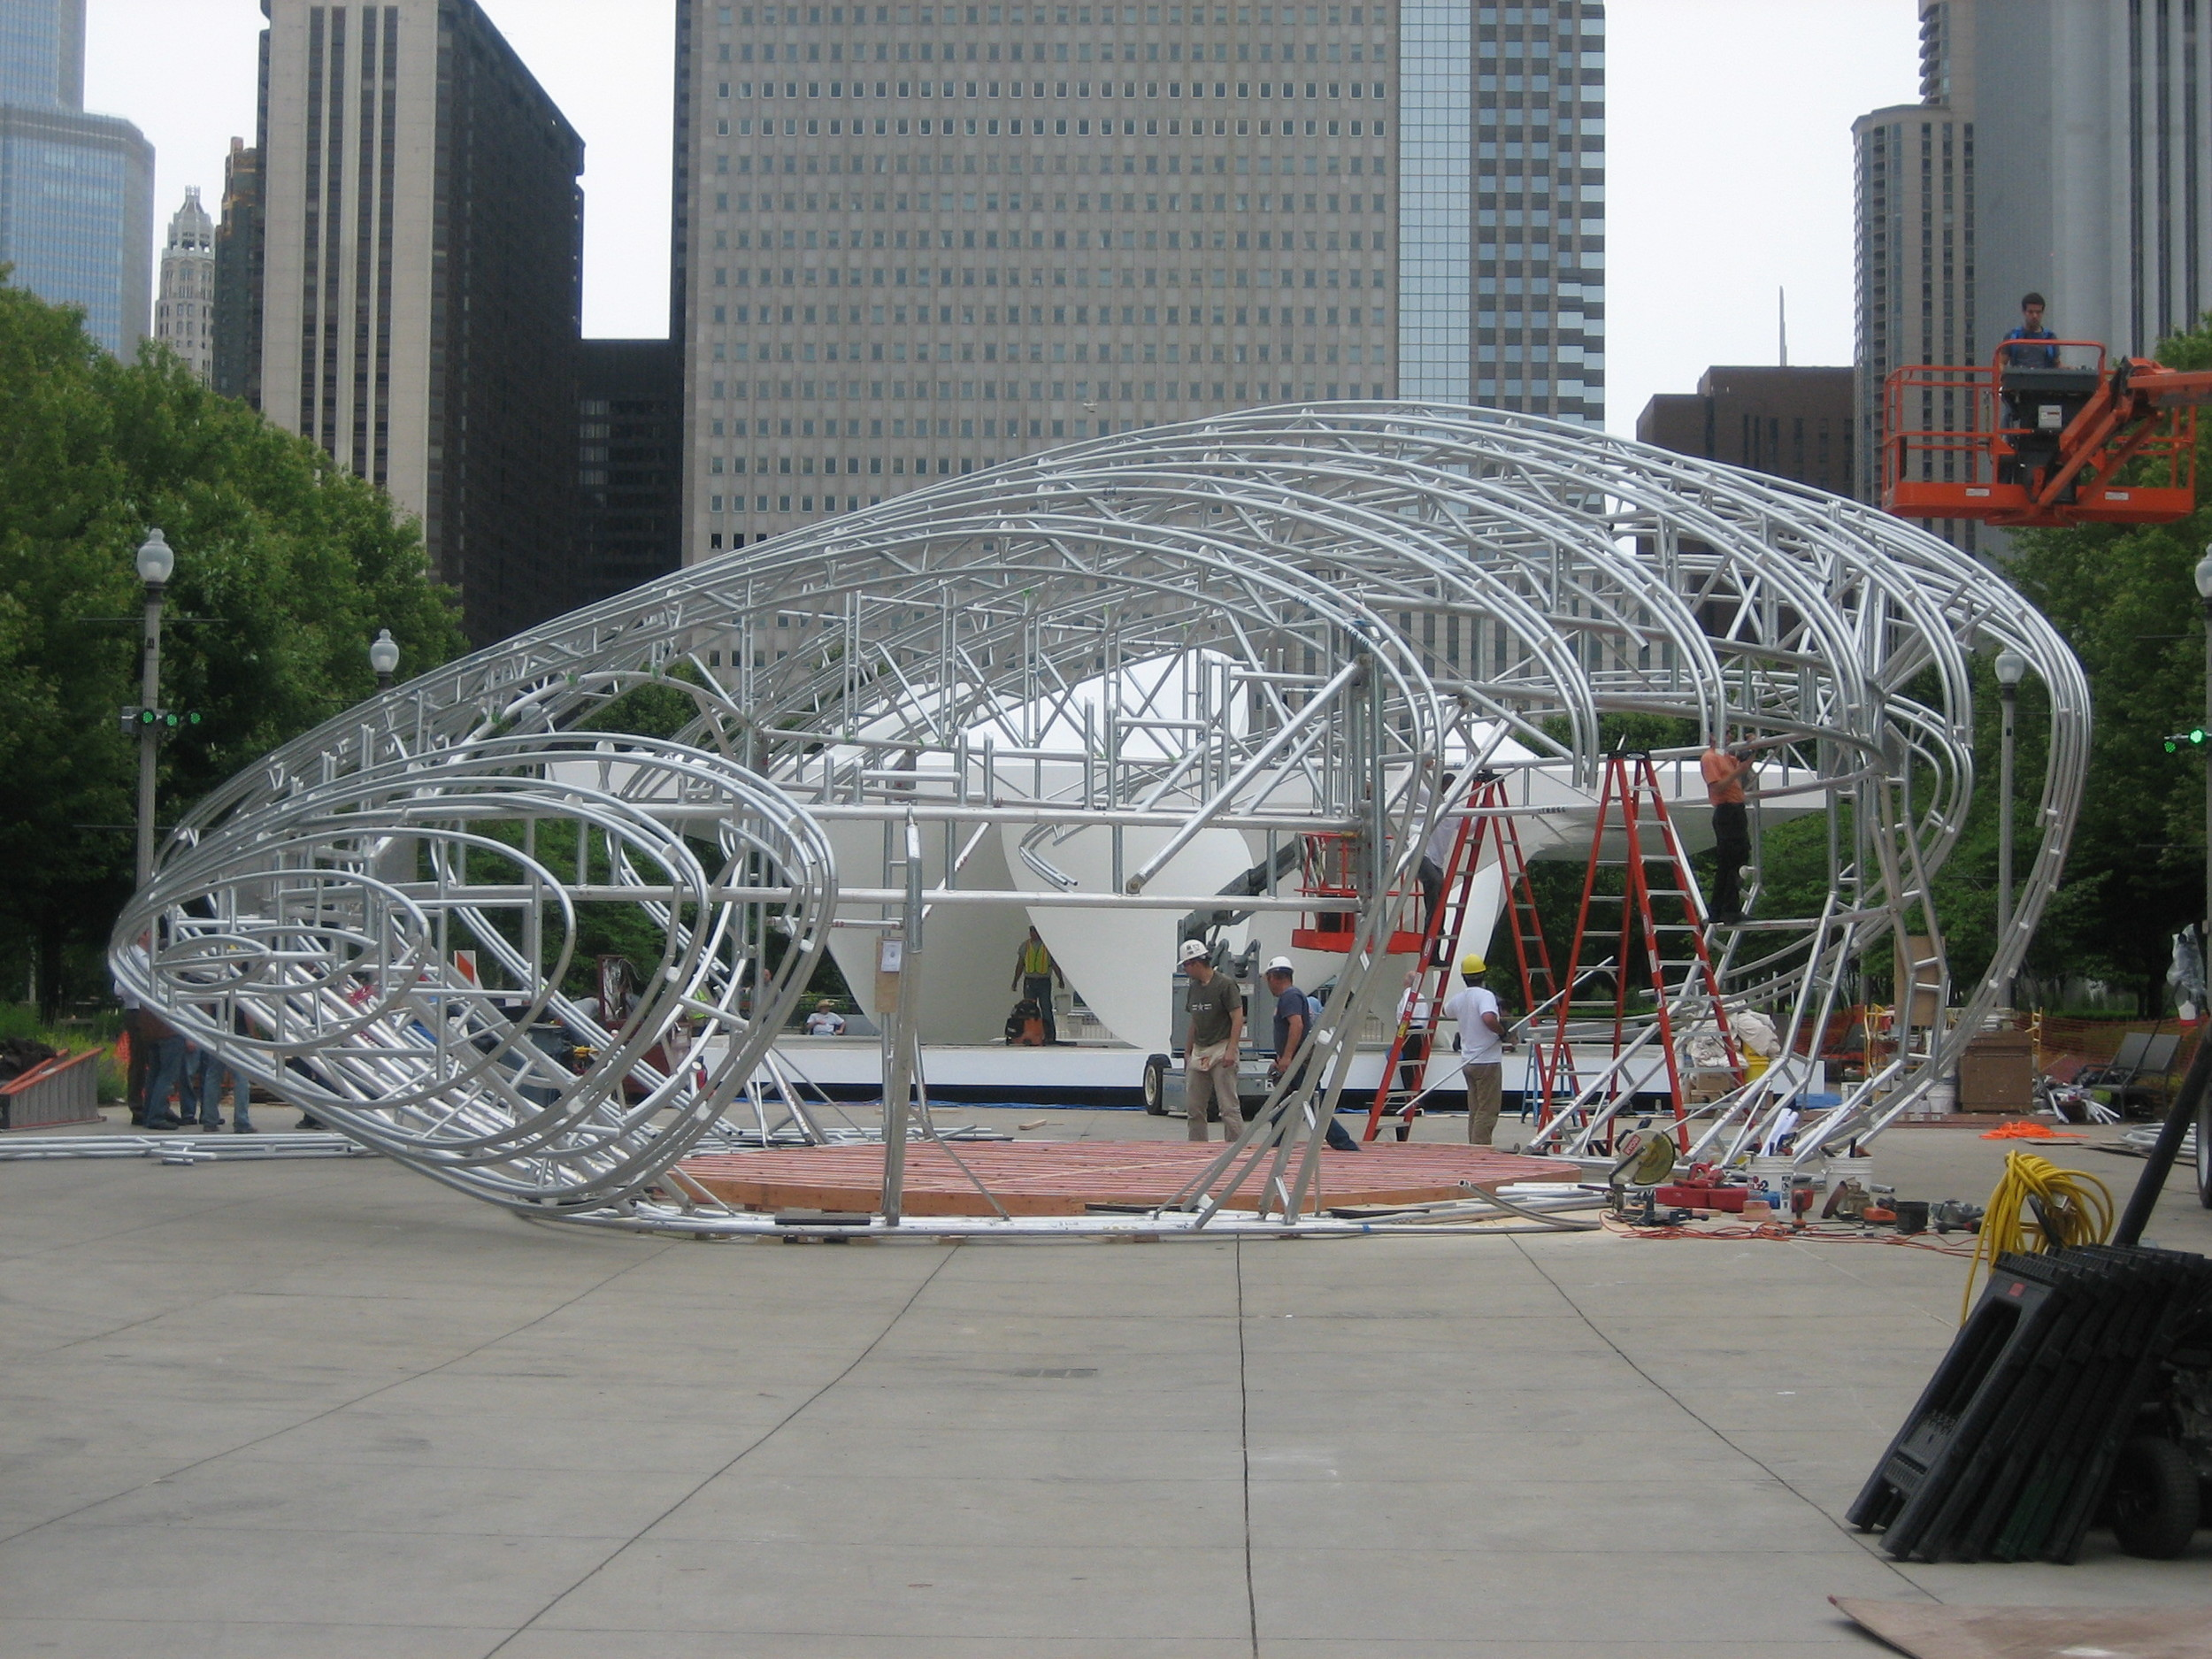 Structural Engineer - Rockey Structures  Design Architect - Zaha Hadid Architects  Architect of Record - Thomas A. Roszak  Chicago Art Installation